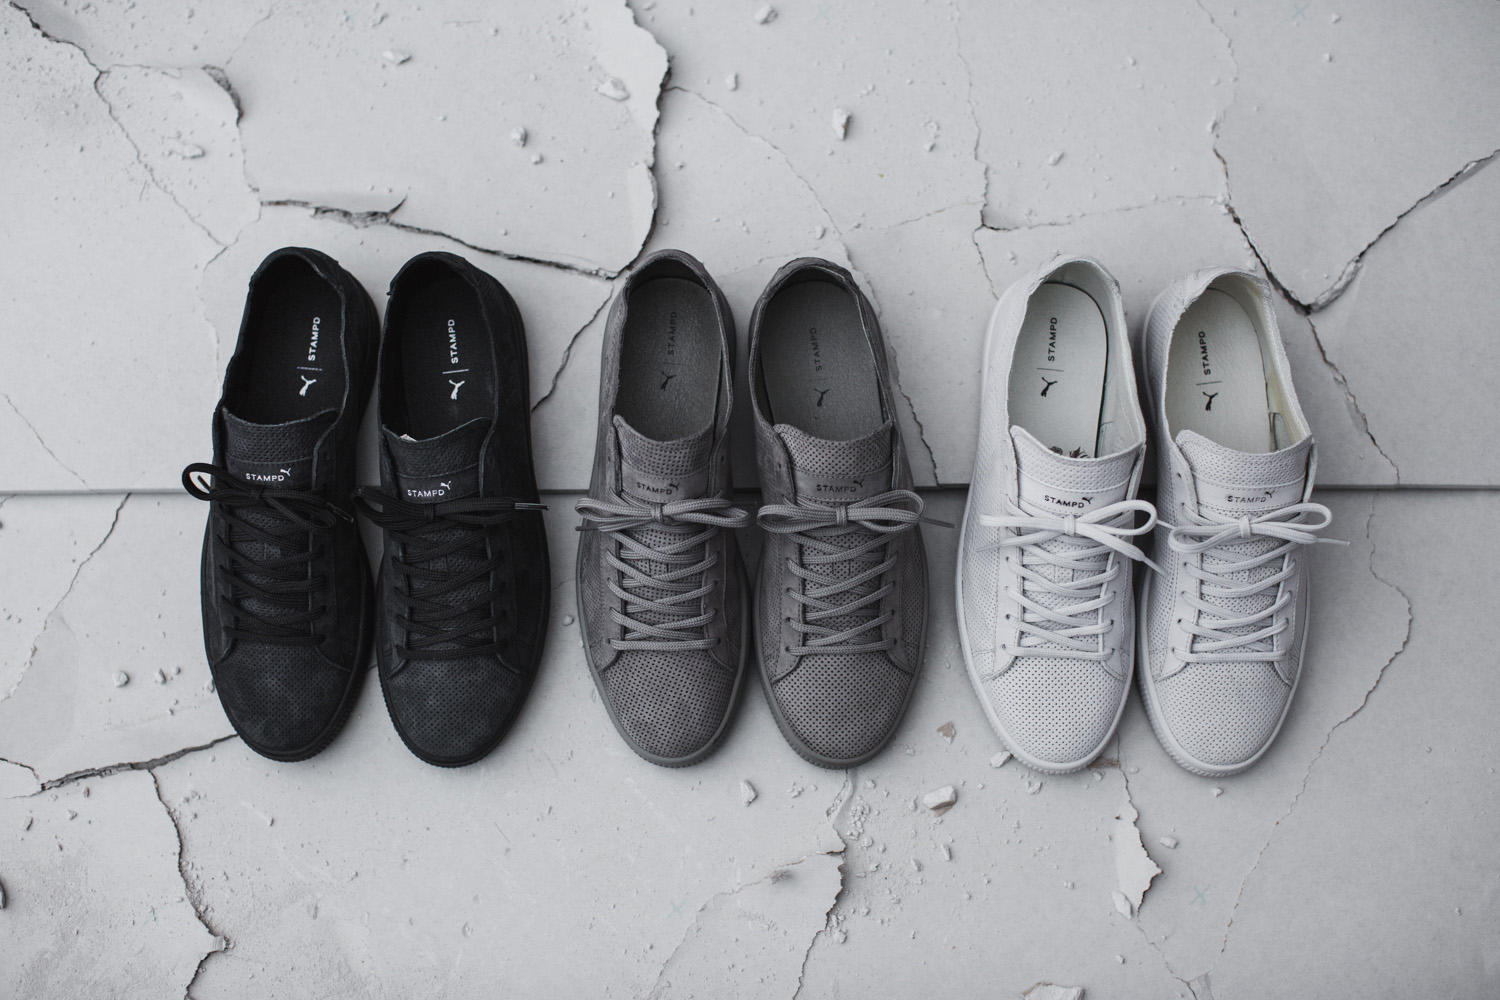 revendeur b3c09 6a374 Swag Craze: PUMA and STAMPD Drop The New '96 Hours' Collection